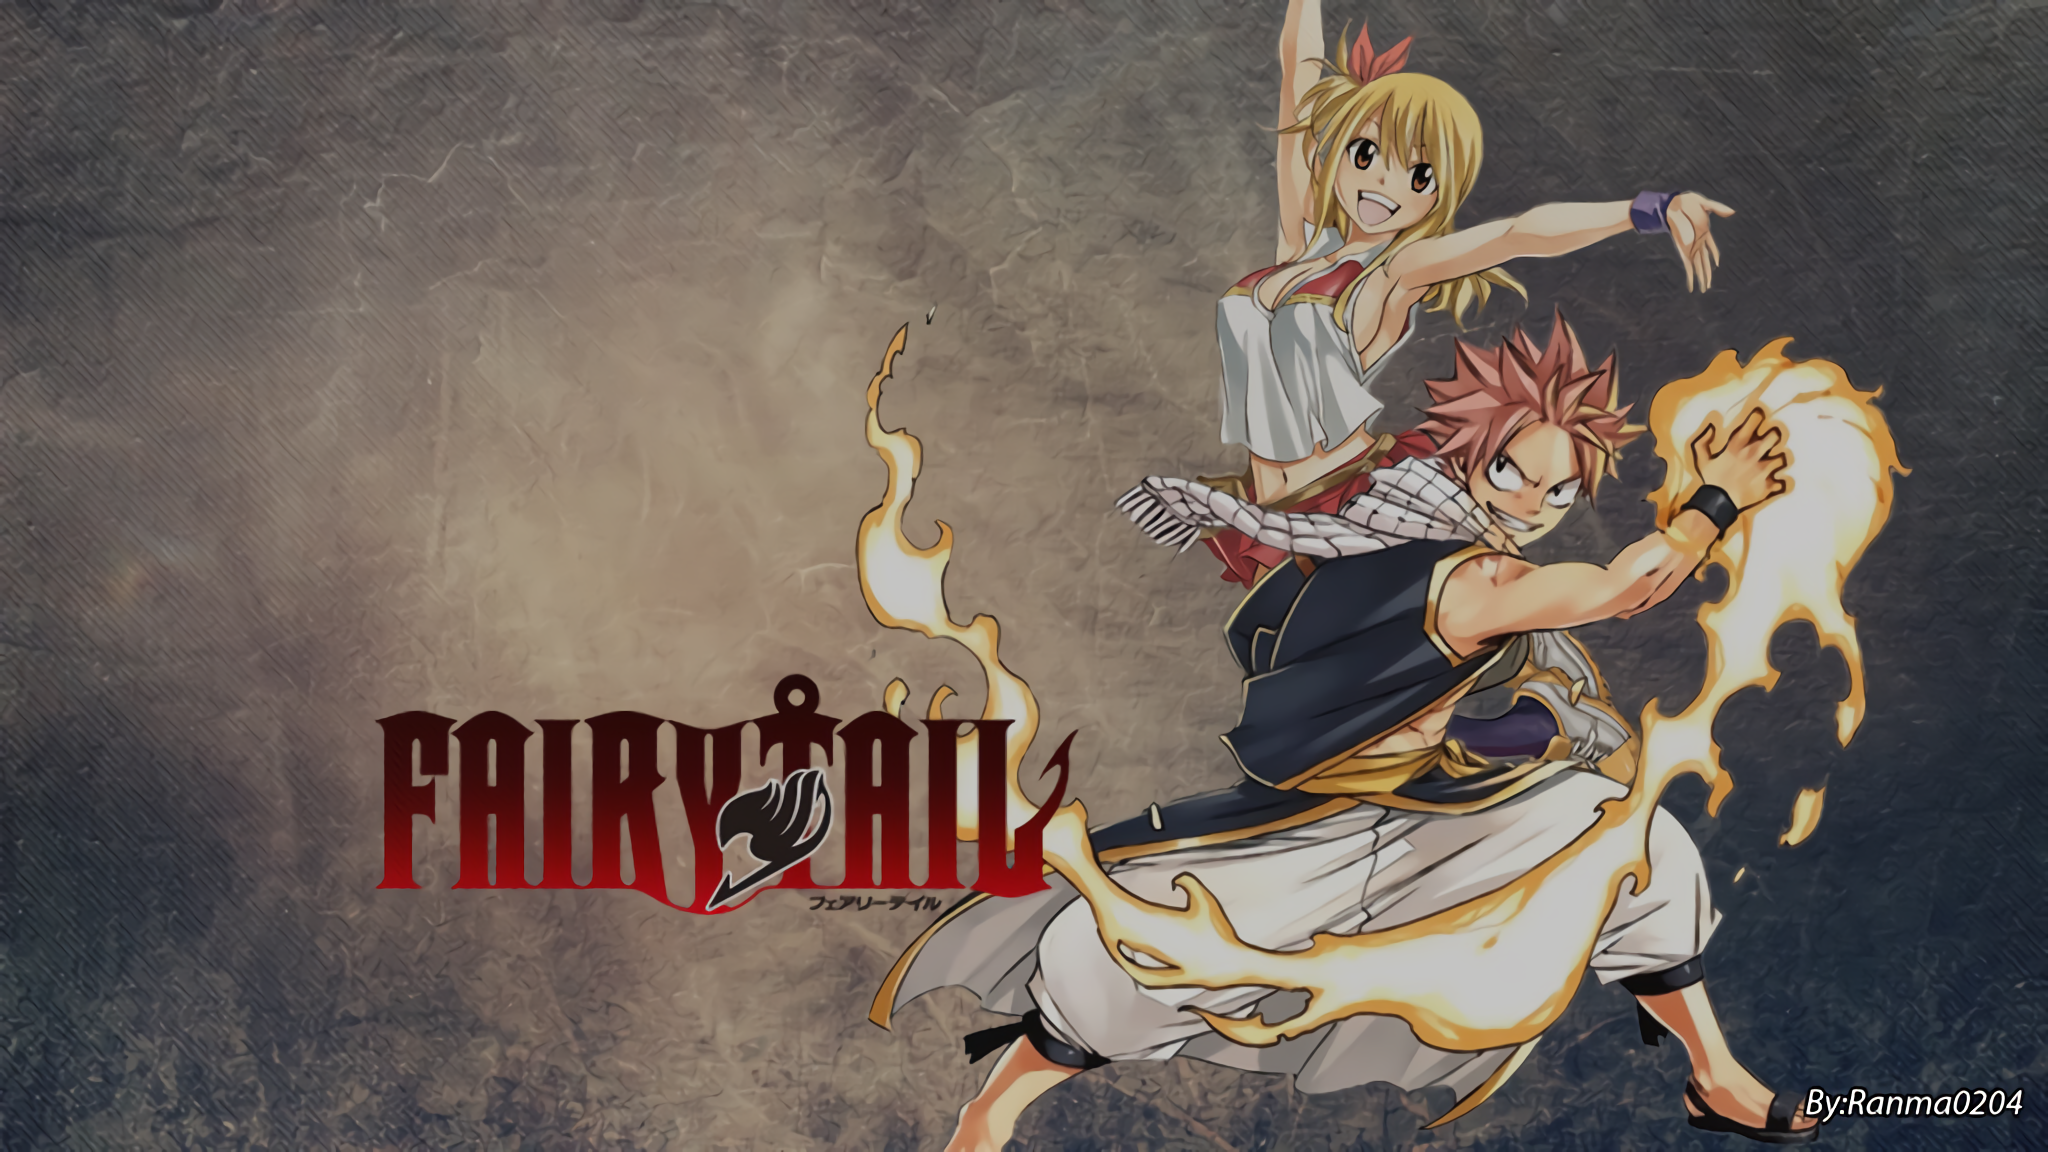 Fairy Tail Hd Wallpaper Background Image 2048x1152 Id